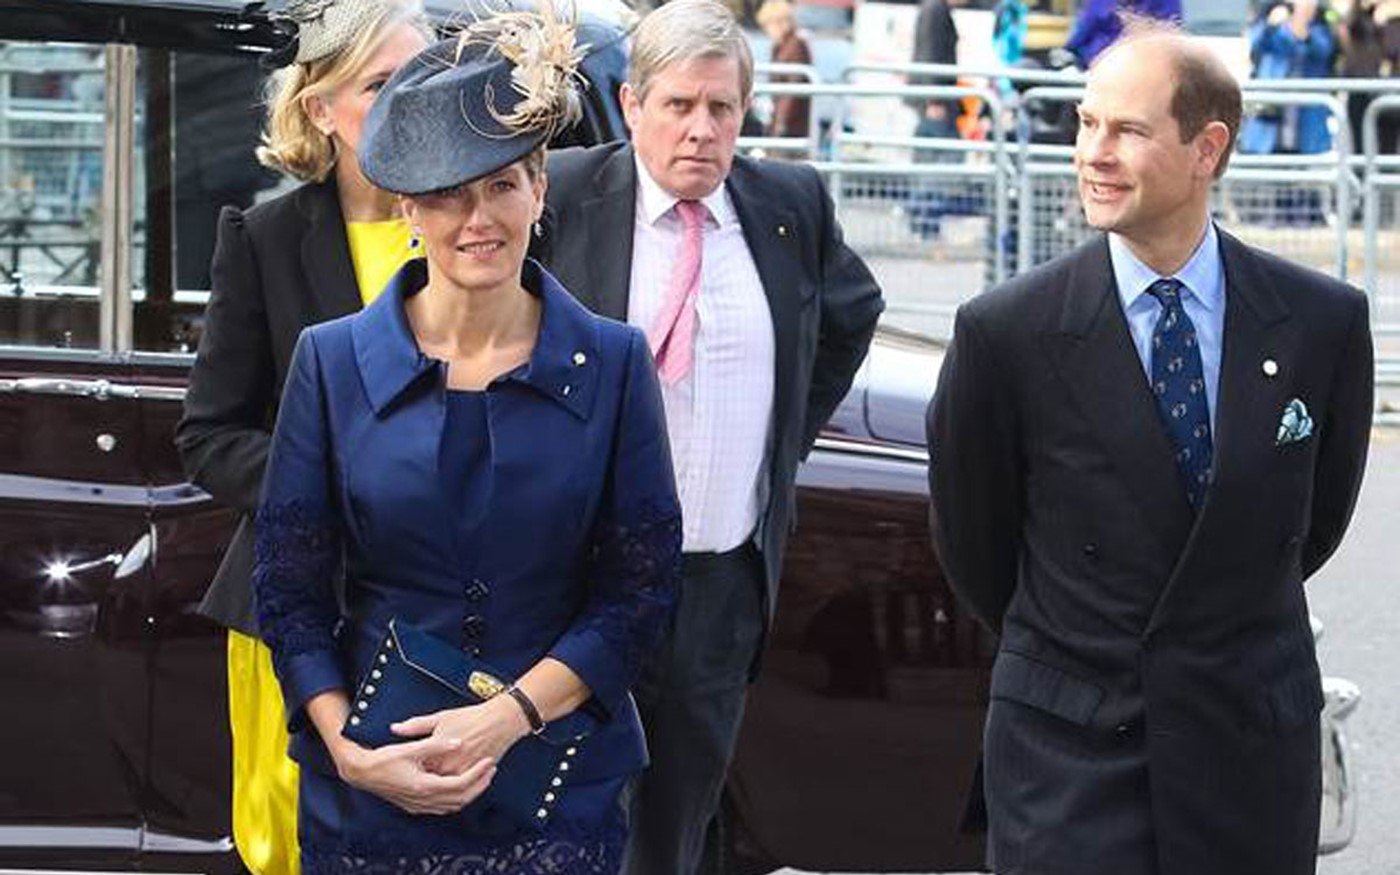 Their Royal Highnesses the Earl and Countess of Wessex arrive for the service of Thanksgiving to Celebrate the Diamond Anniversary of the Duke of Edinburgh's Awrd